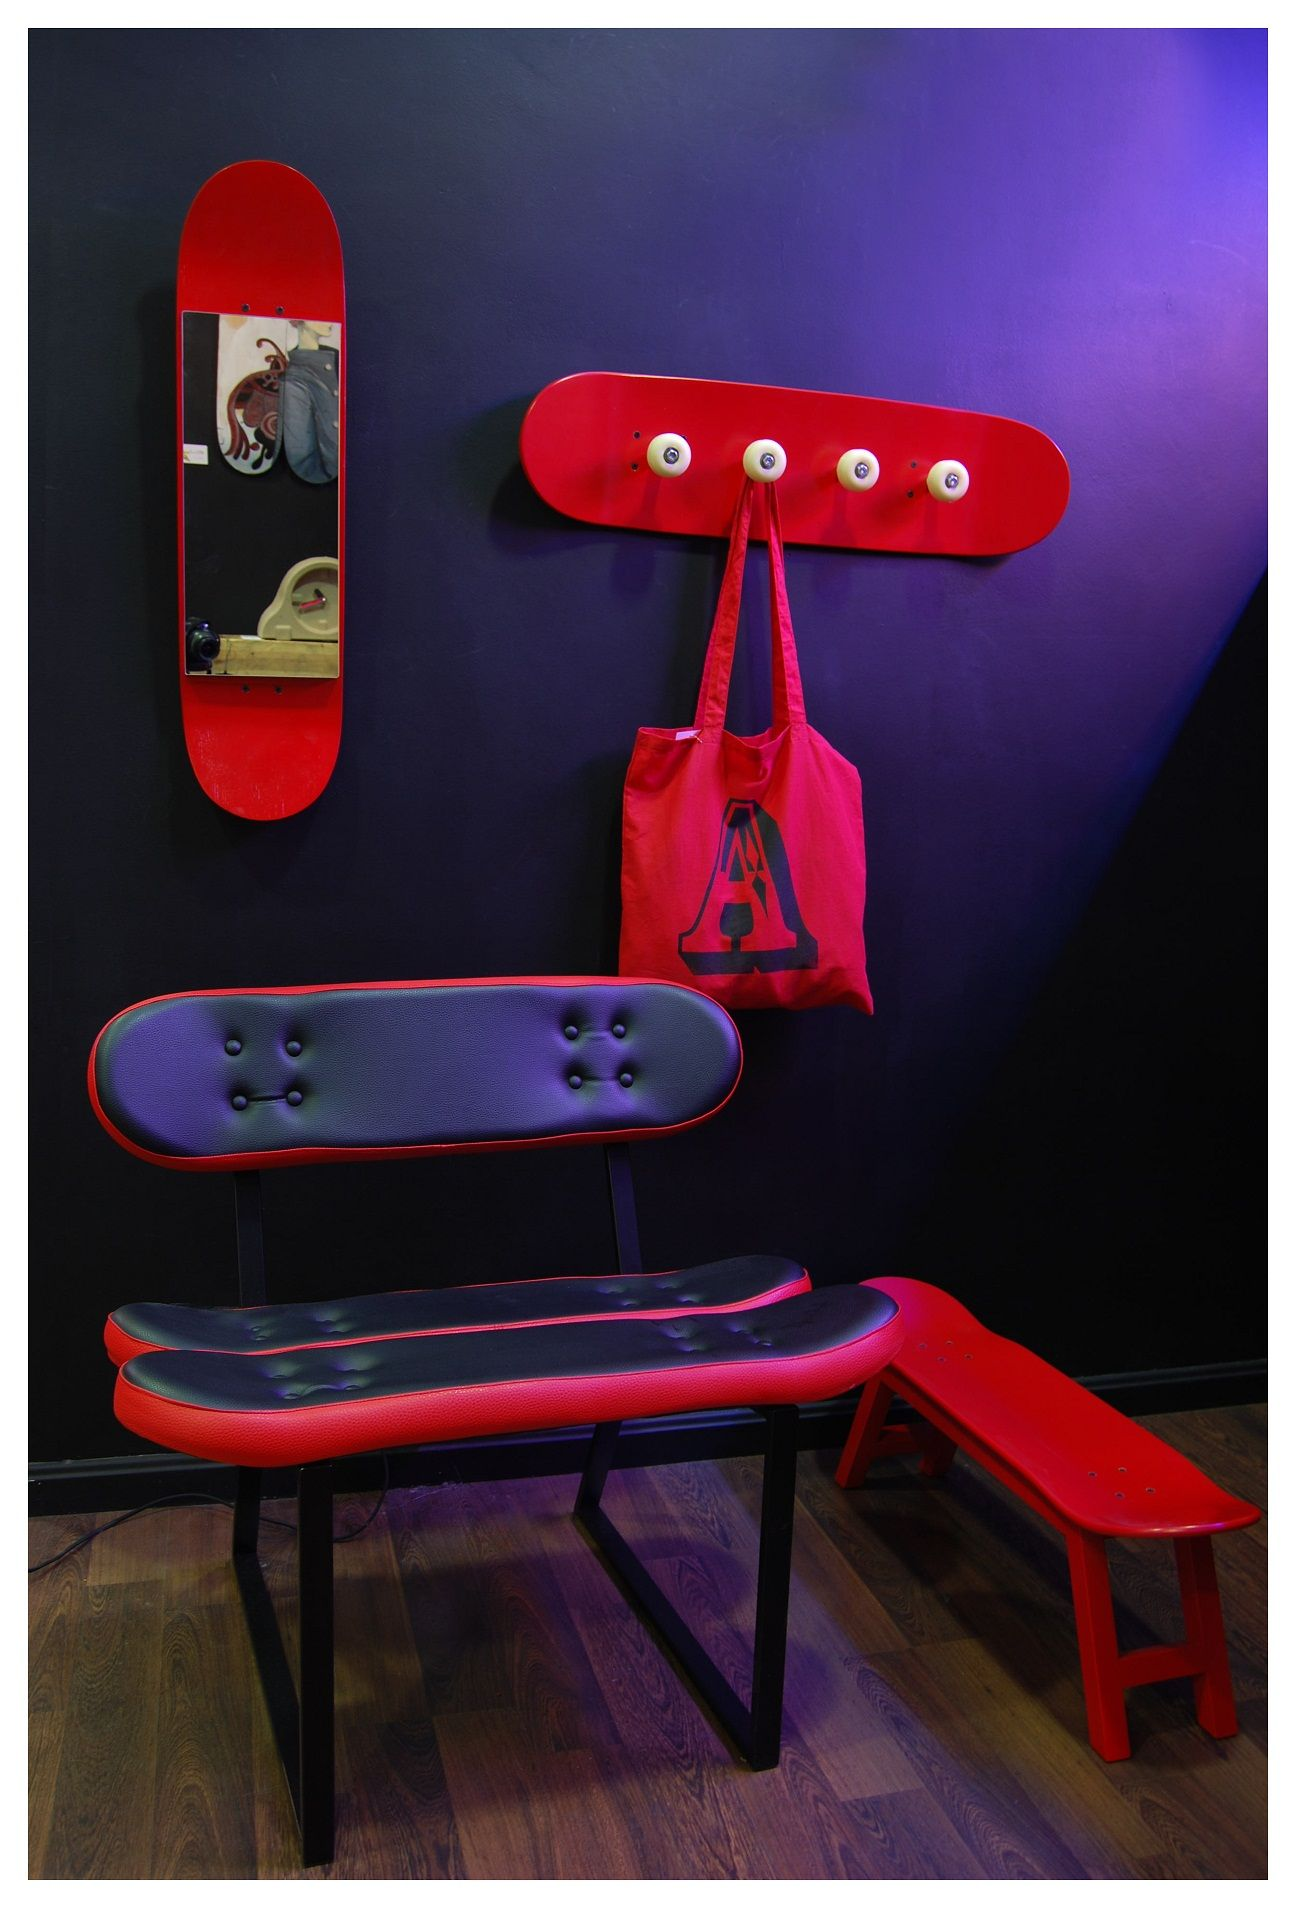 Skateboard Bedroom Furniture the following post will give you inspiration how to create a